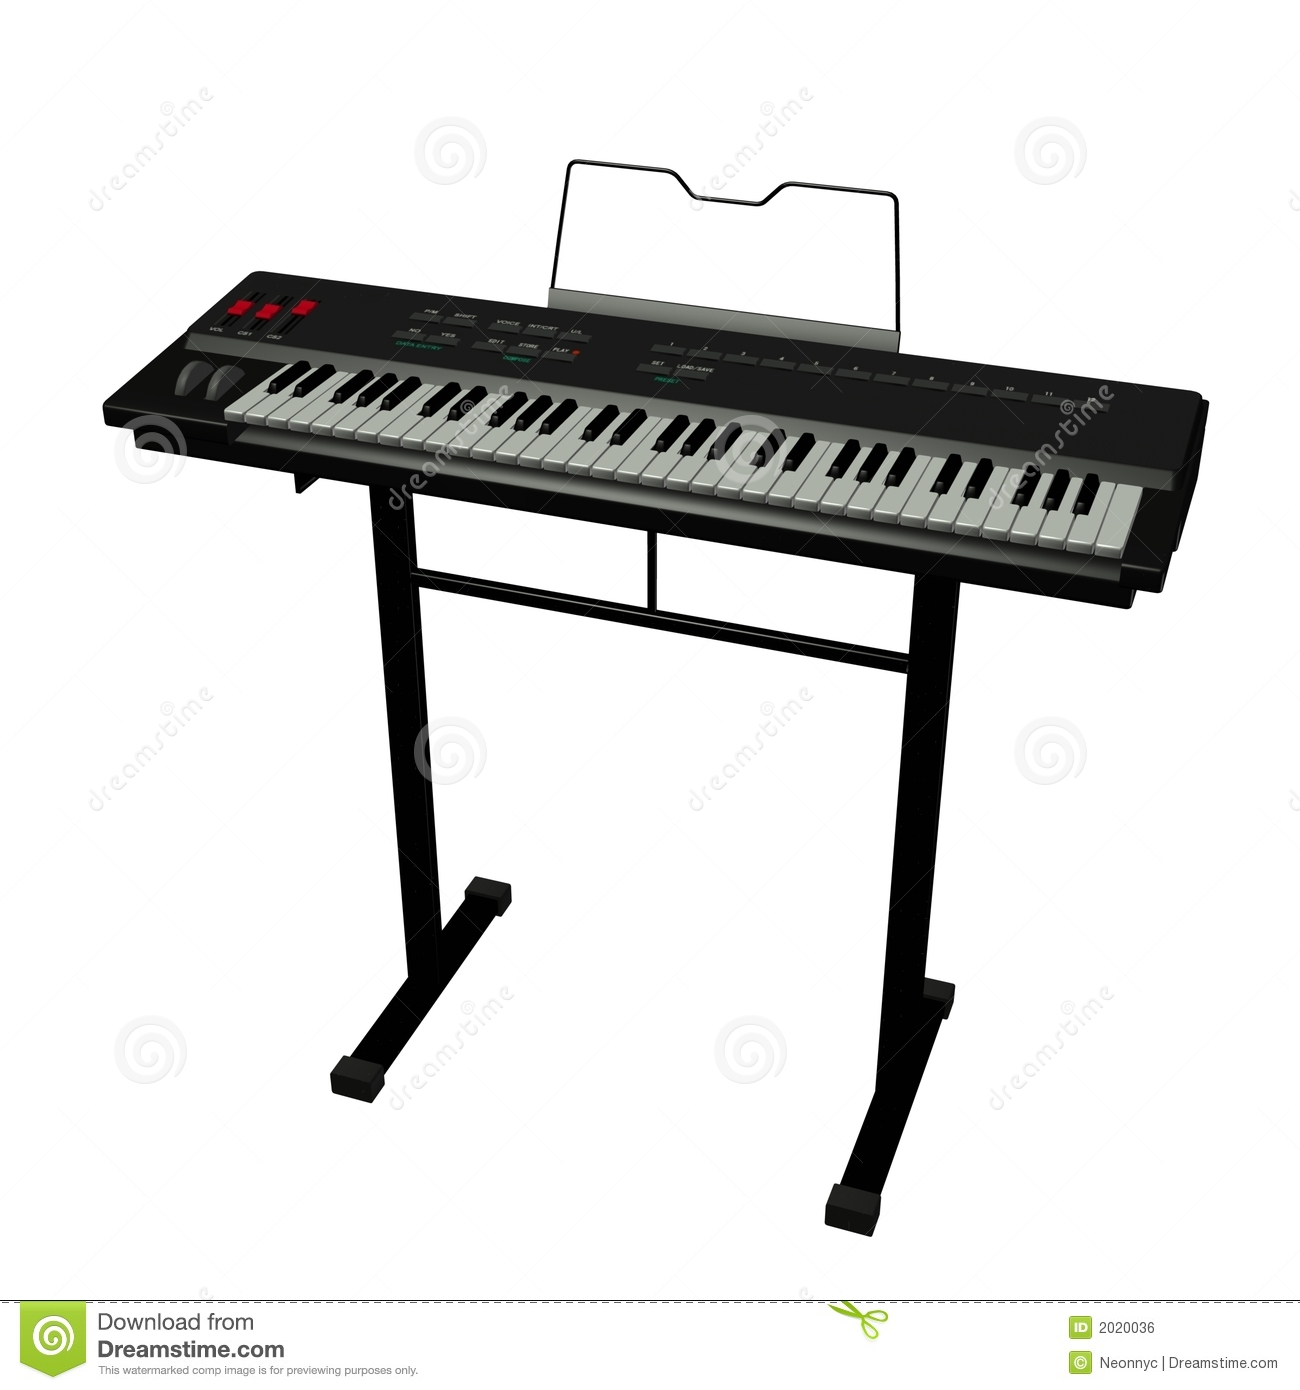 Electronic Keyboard Clipart - Clipart Kid